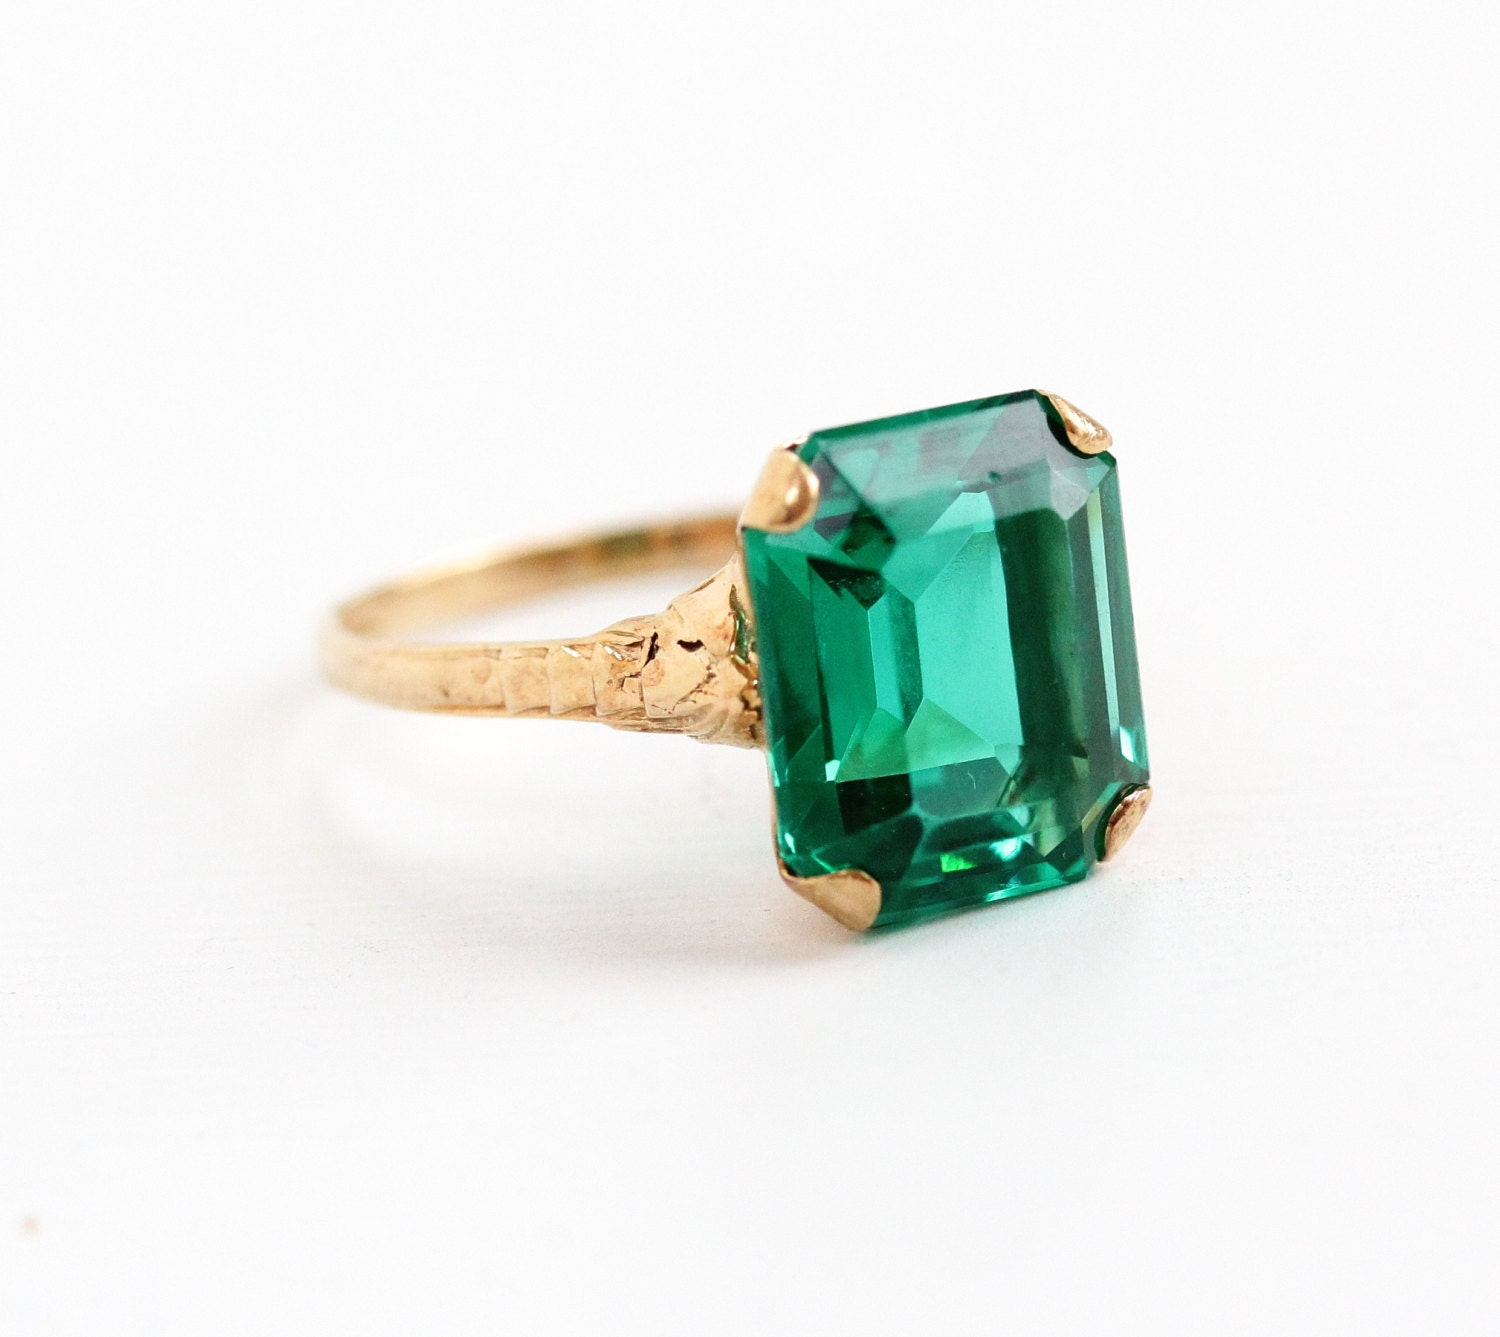 vintage 10k yellow gold simulated emerald ring late deco